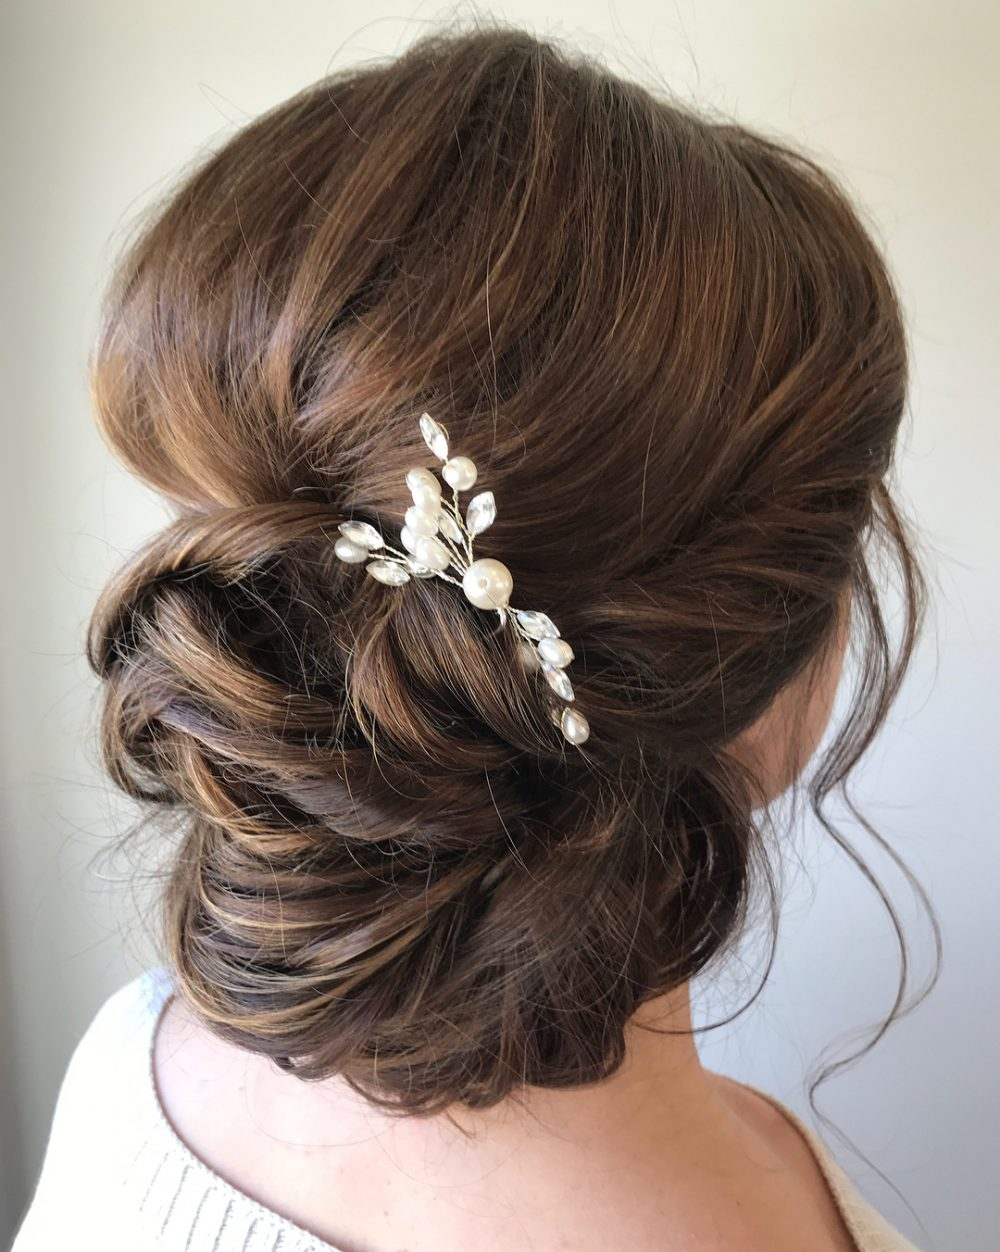 33 Breathtaking Loose Updos That Are Trendy For 2018